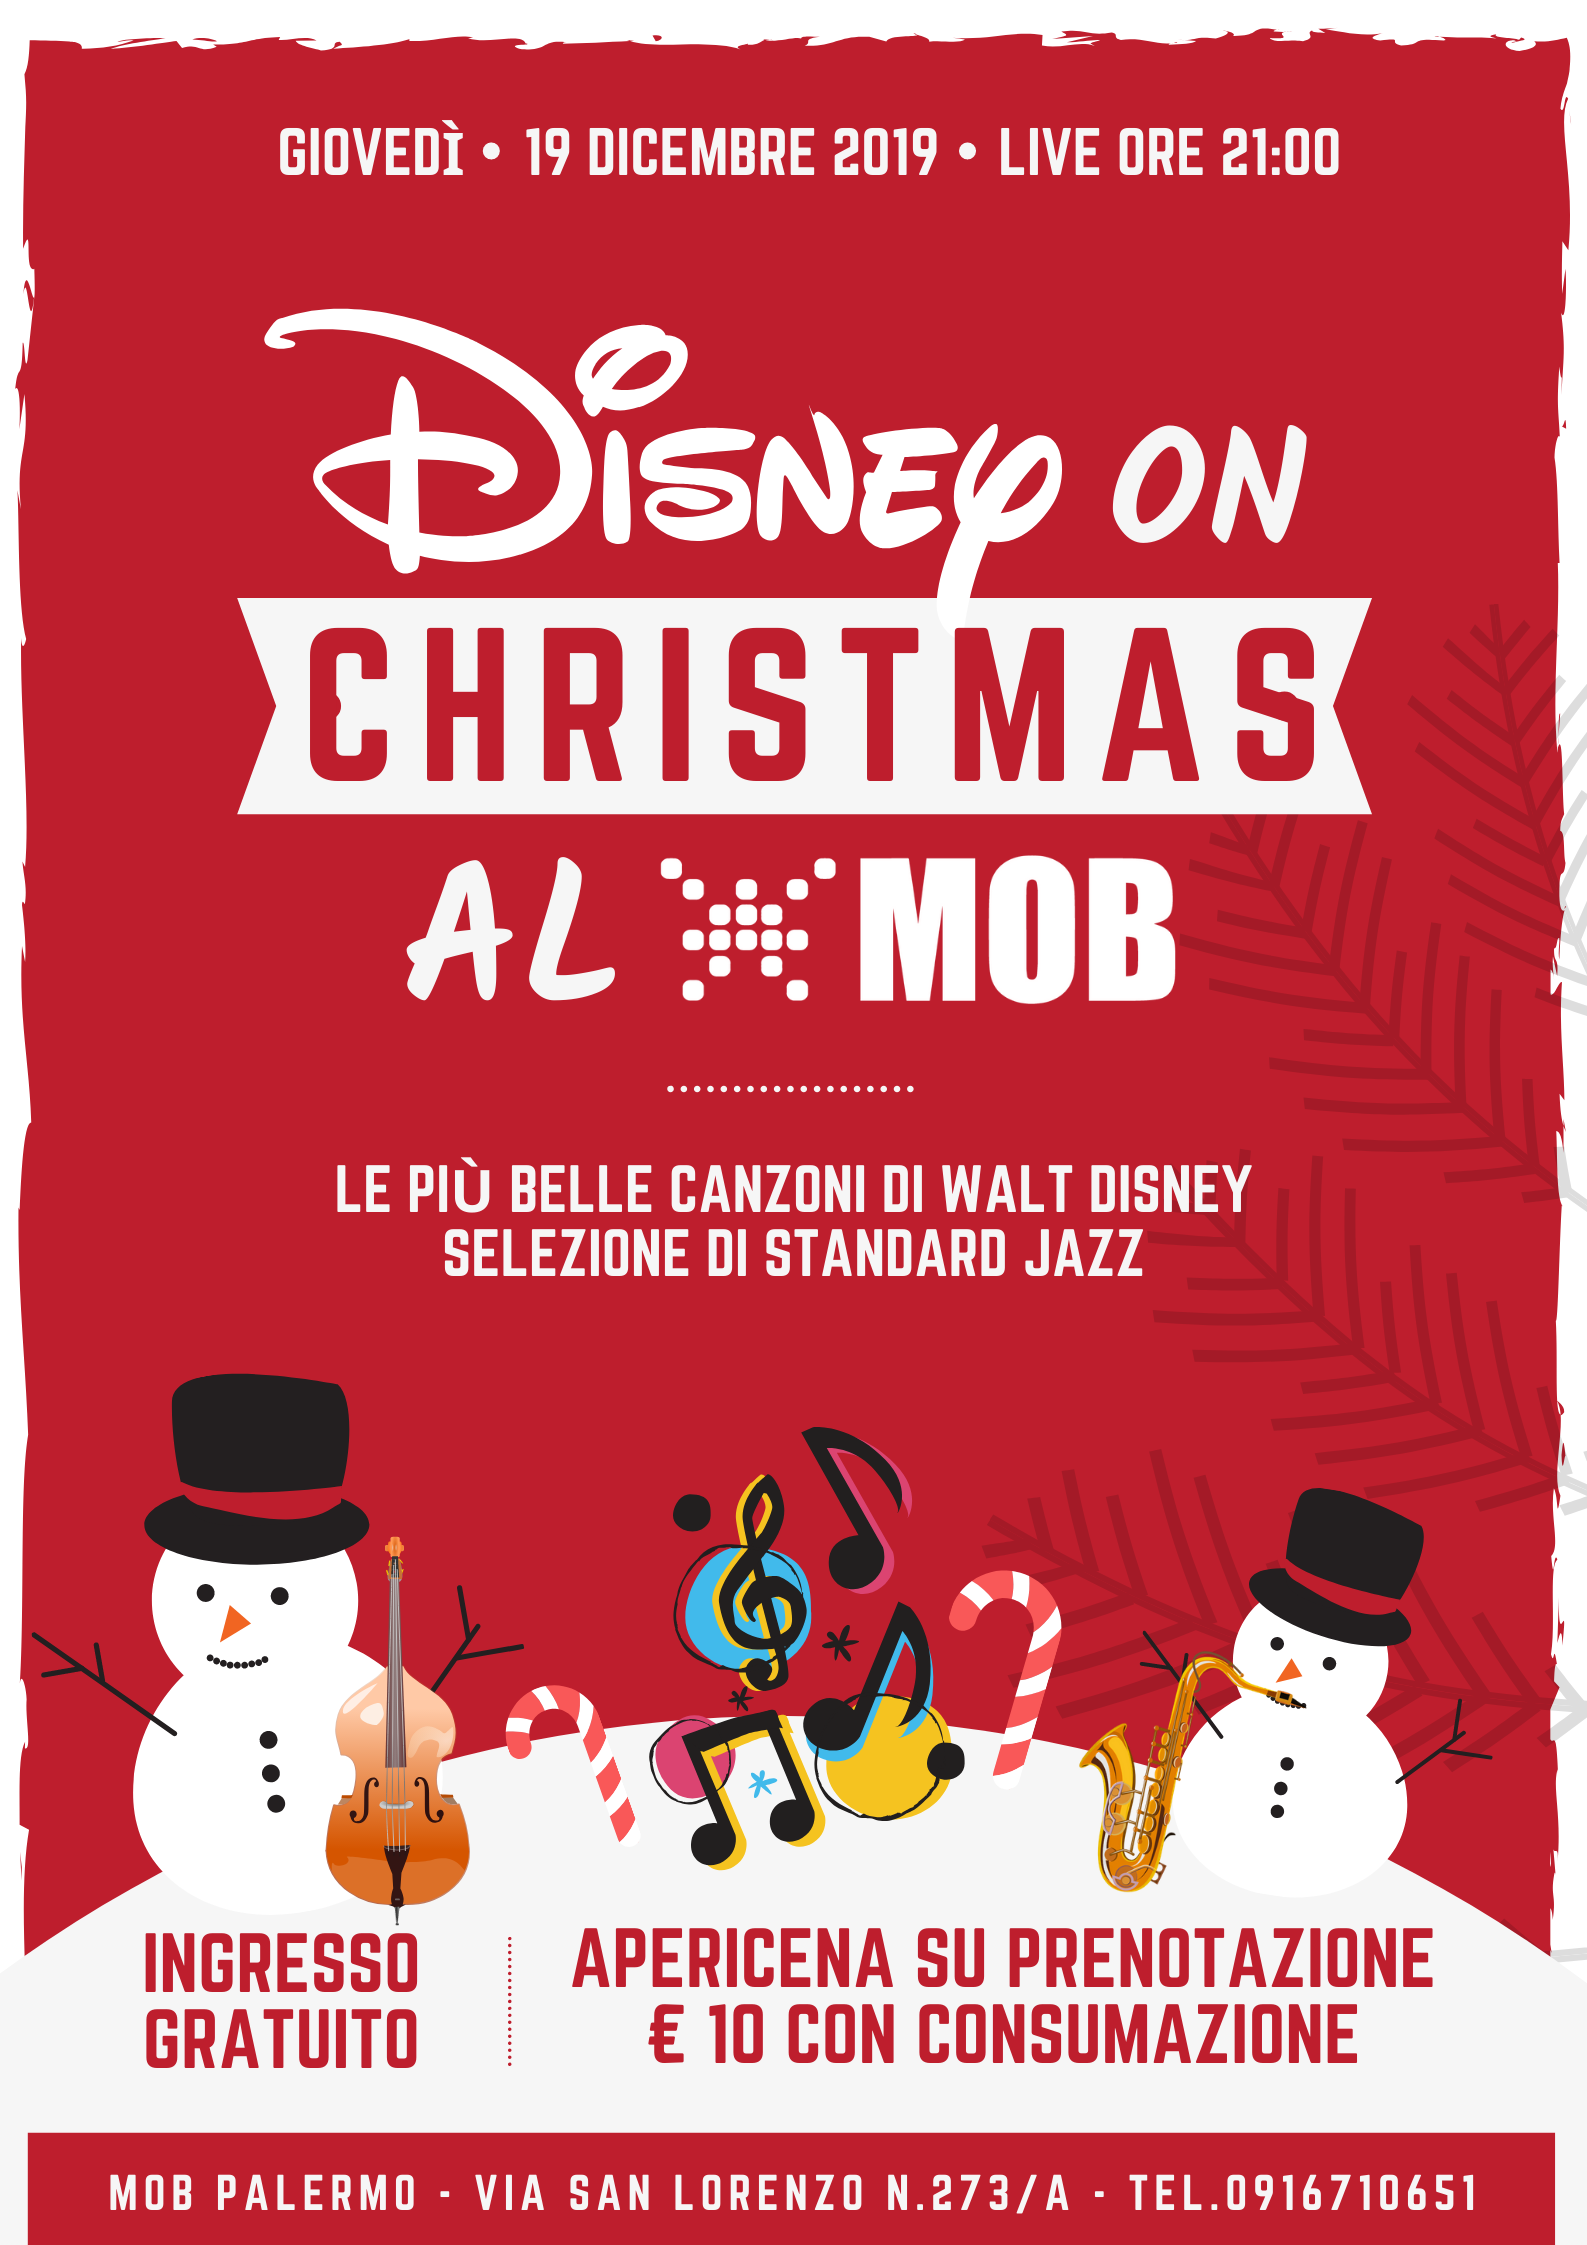 19 DICEMBRE – Disney on Christmas al MOB